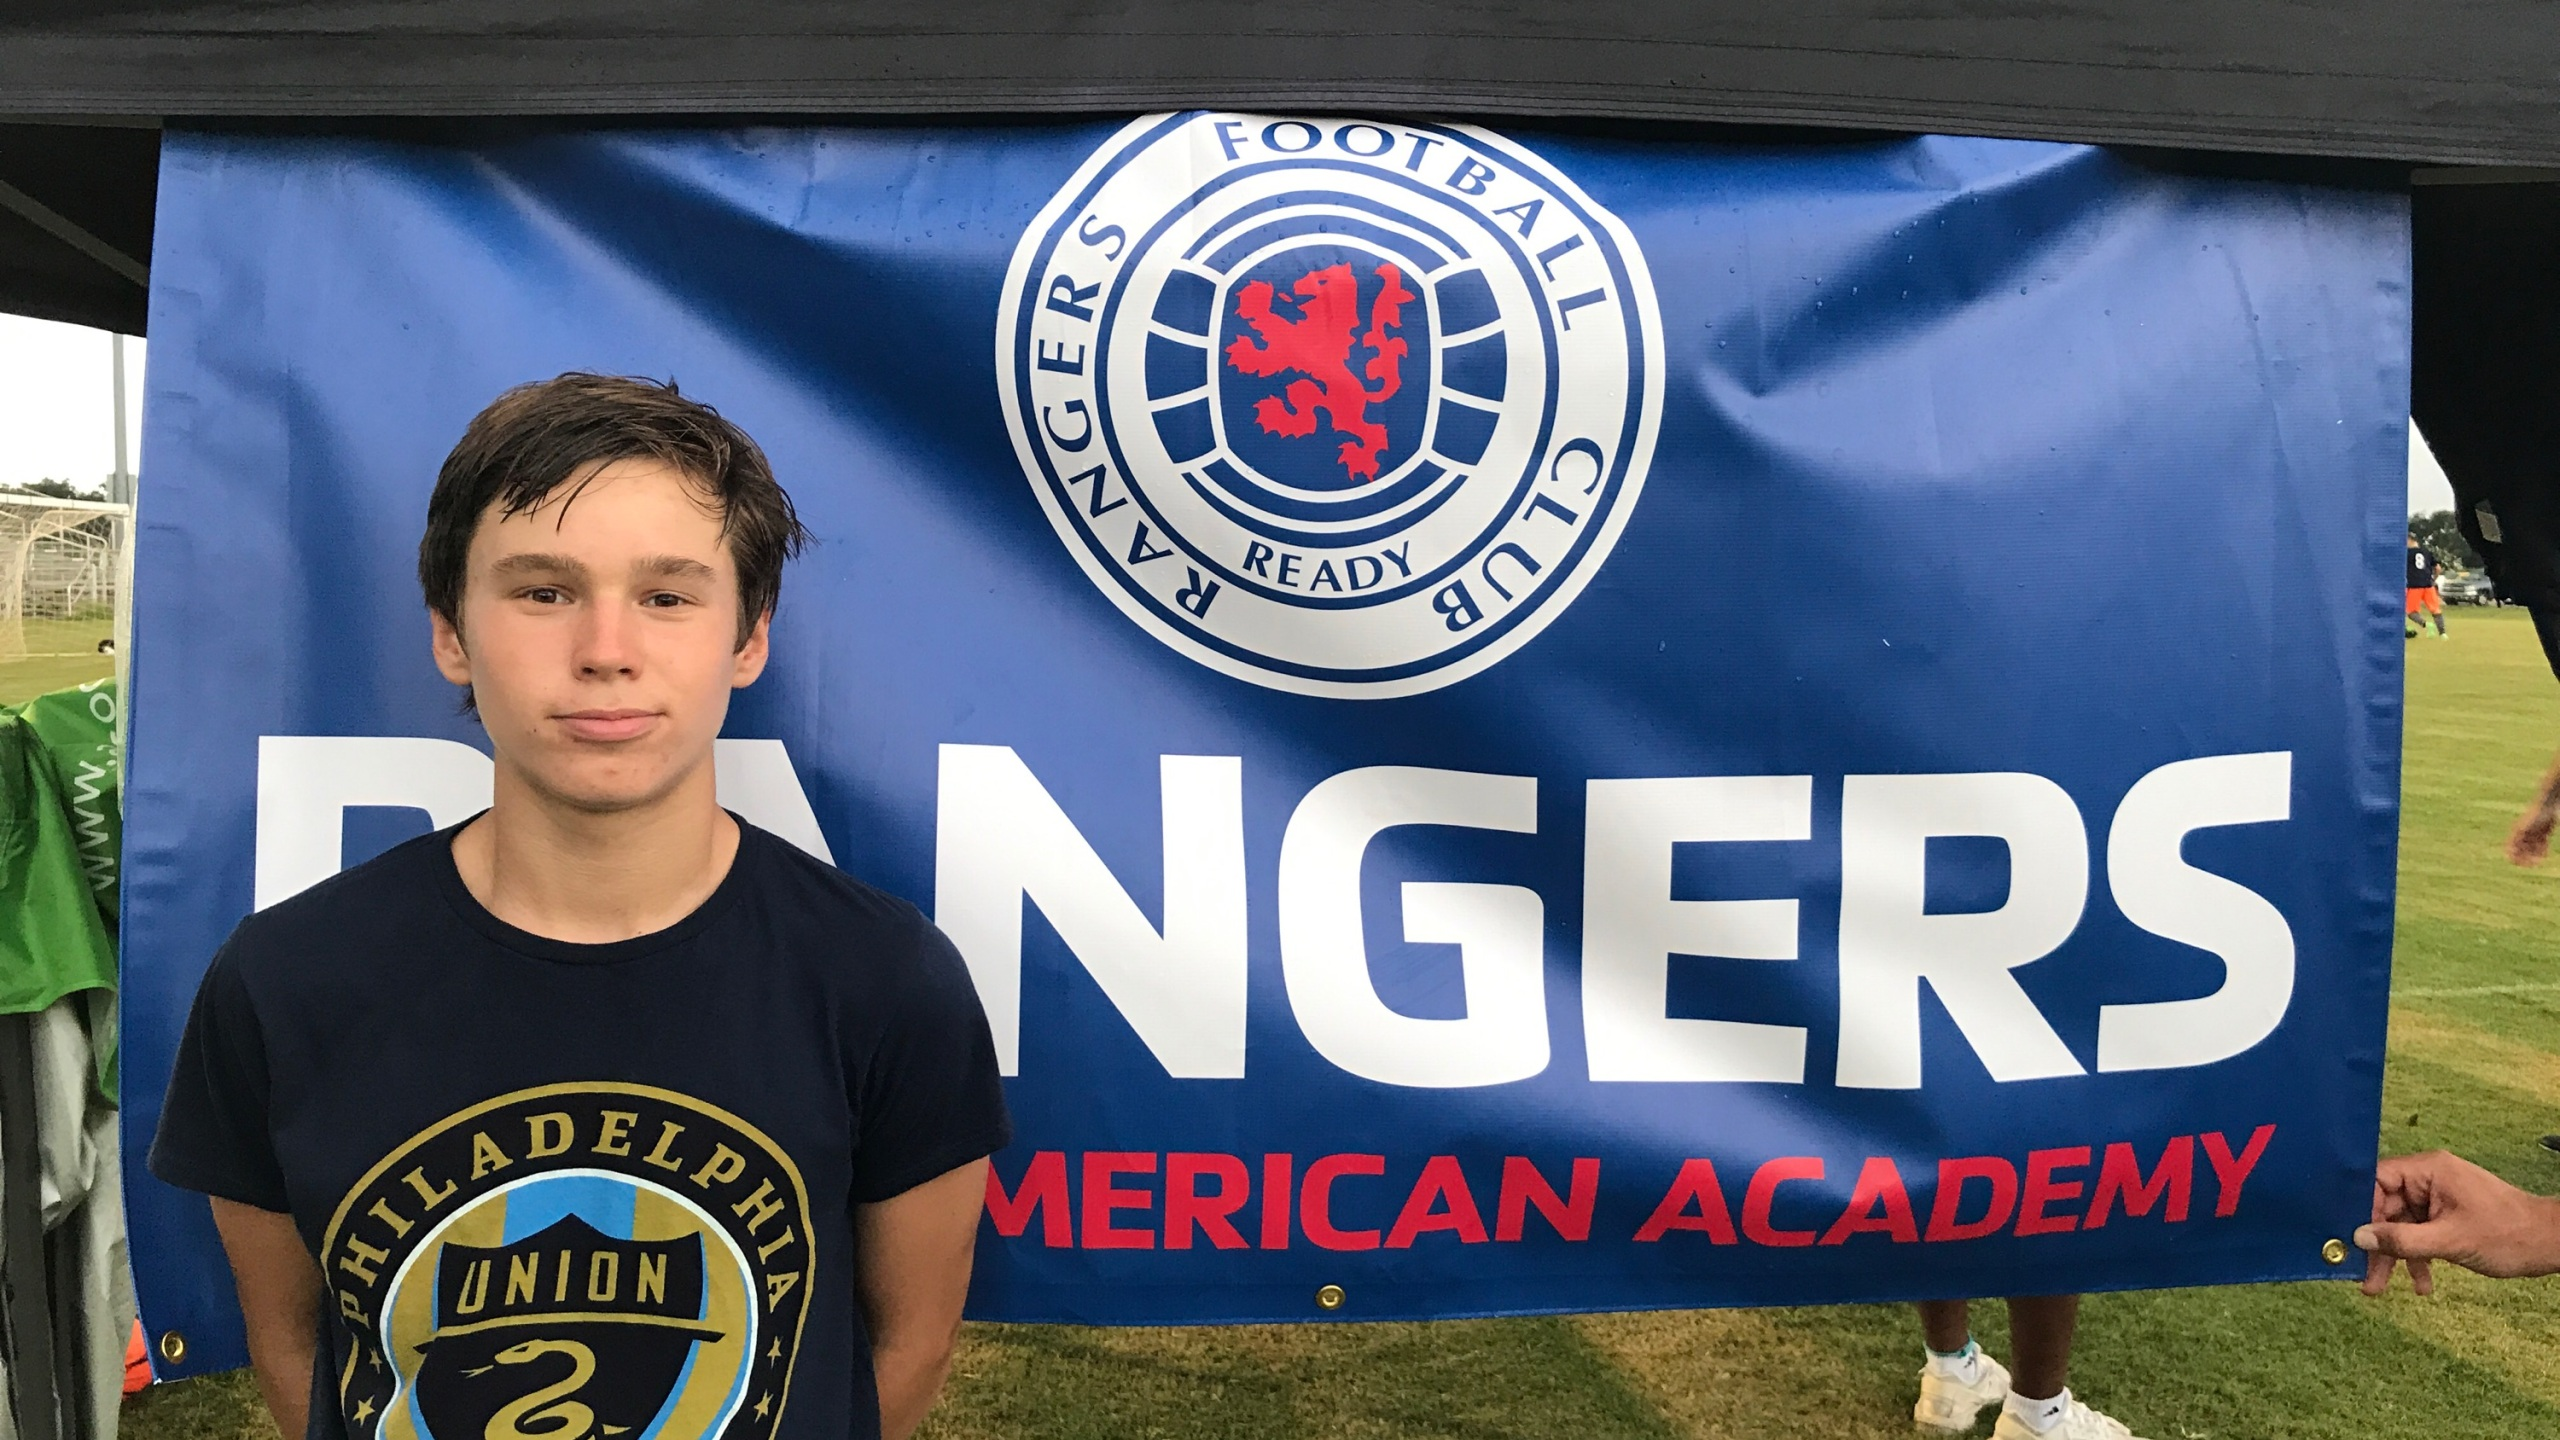 Local 13-Year-Old Soccer Player Discovered by Union Youth